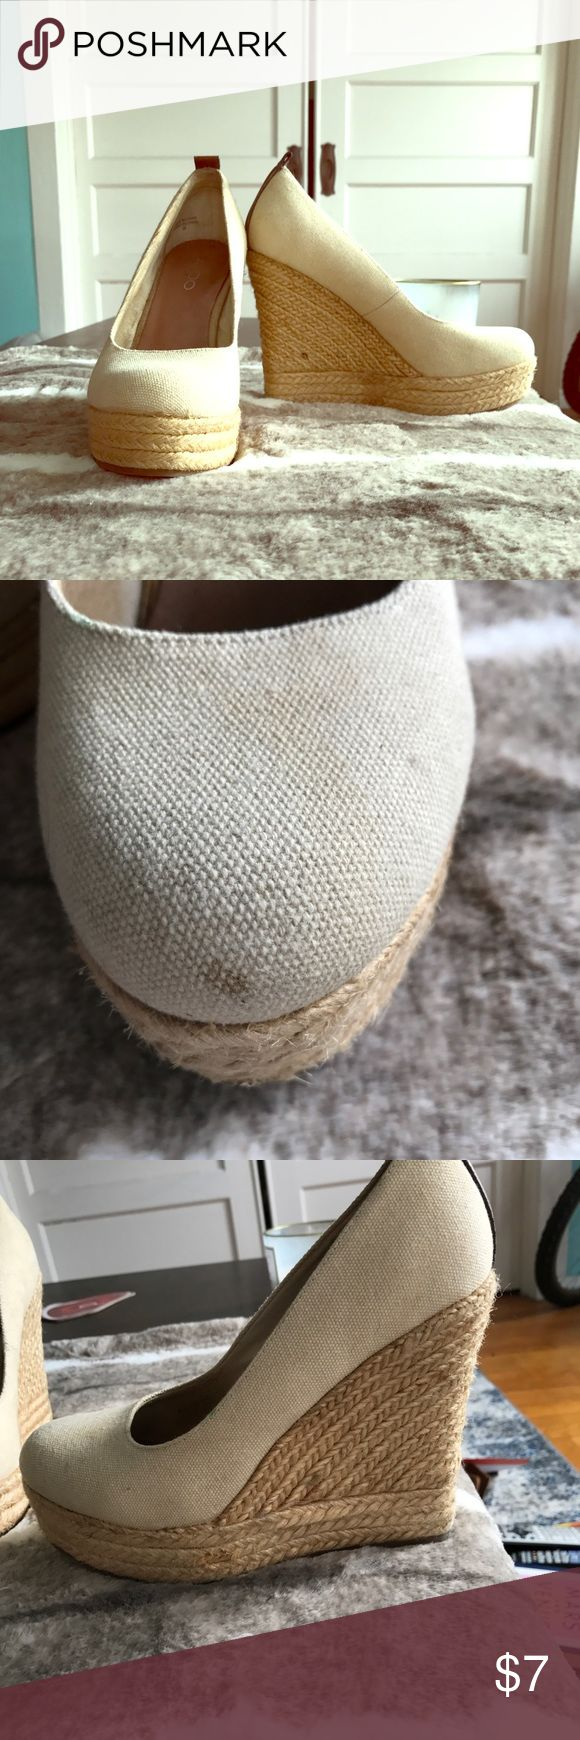 Aldo Wedges Light Beige & straw wedges, size 38, minor discoloration on toe (as pictured) and the straw is darker in some areas (last photo). Only worn a few times. Really cute & sexy on! I think Aldo shoes always fit smaller. I normally wear a 7 and these fit me. Cute tuxedo kitty isn't for sale (pic4)😜 Aldo Shoes Wedges